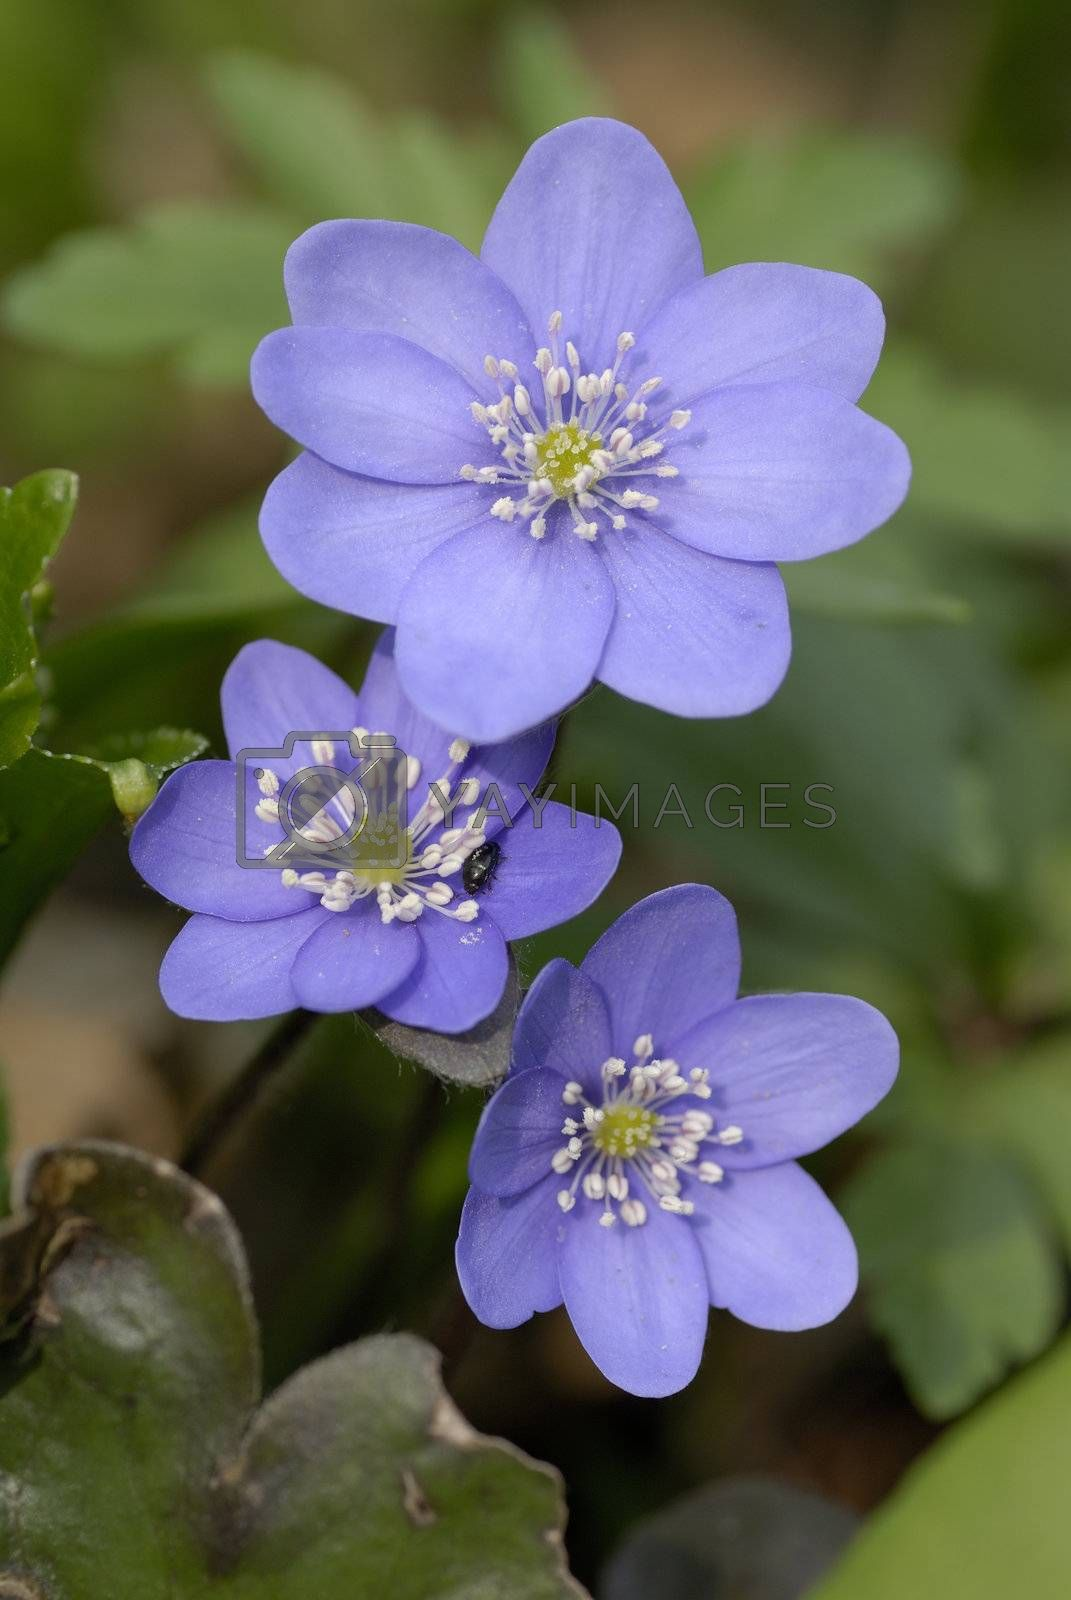 Royalty free image of  Flowers of Liverworth, Hepatica nobilis  by AlessandroZocc